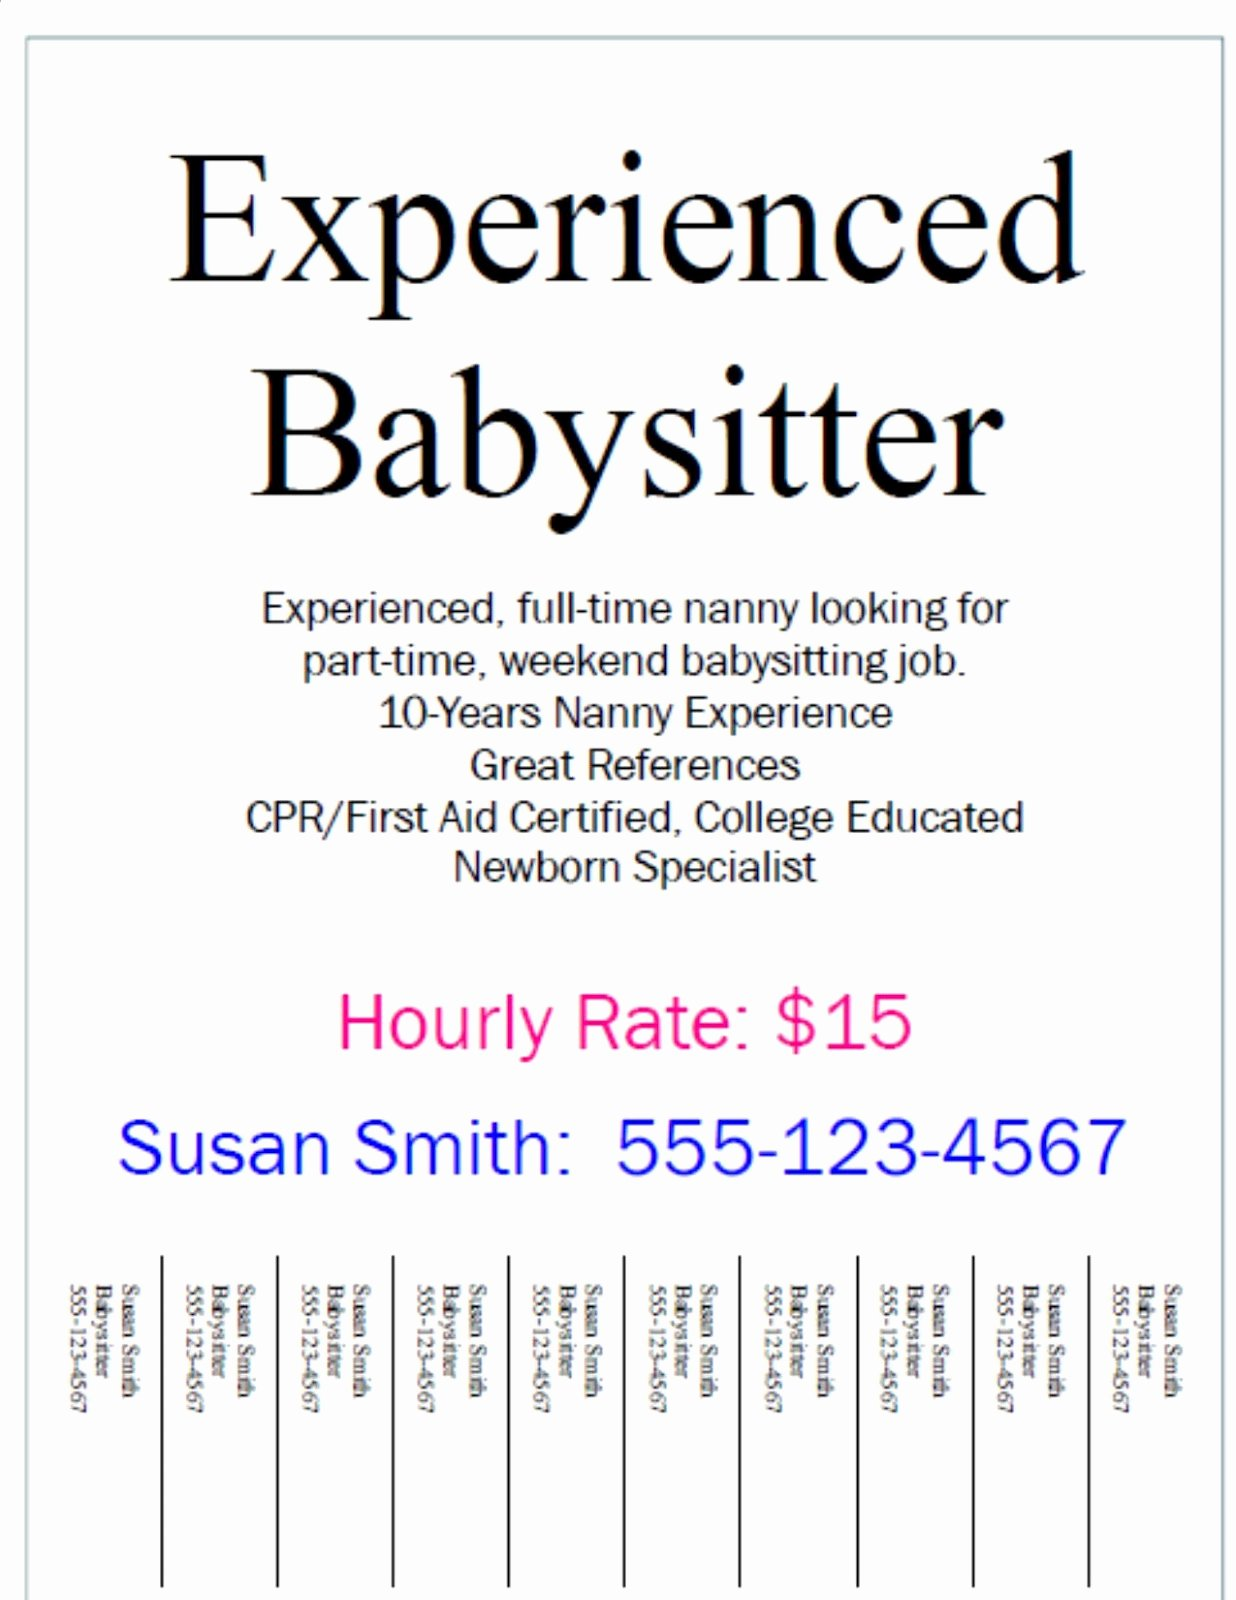 Job Advertisement Template Microsoft Word Unique Printable Babysitting Business Cards Sernidogmissse40